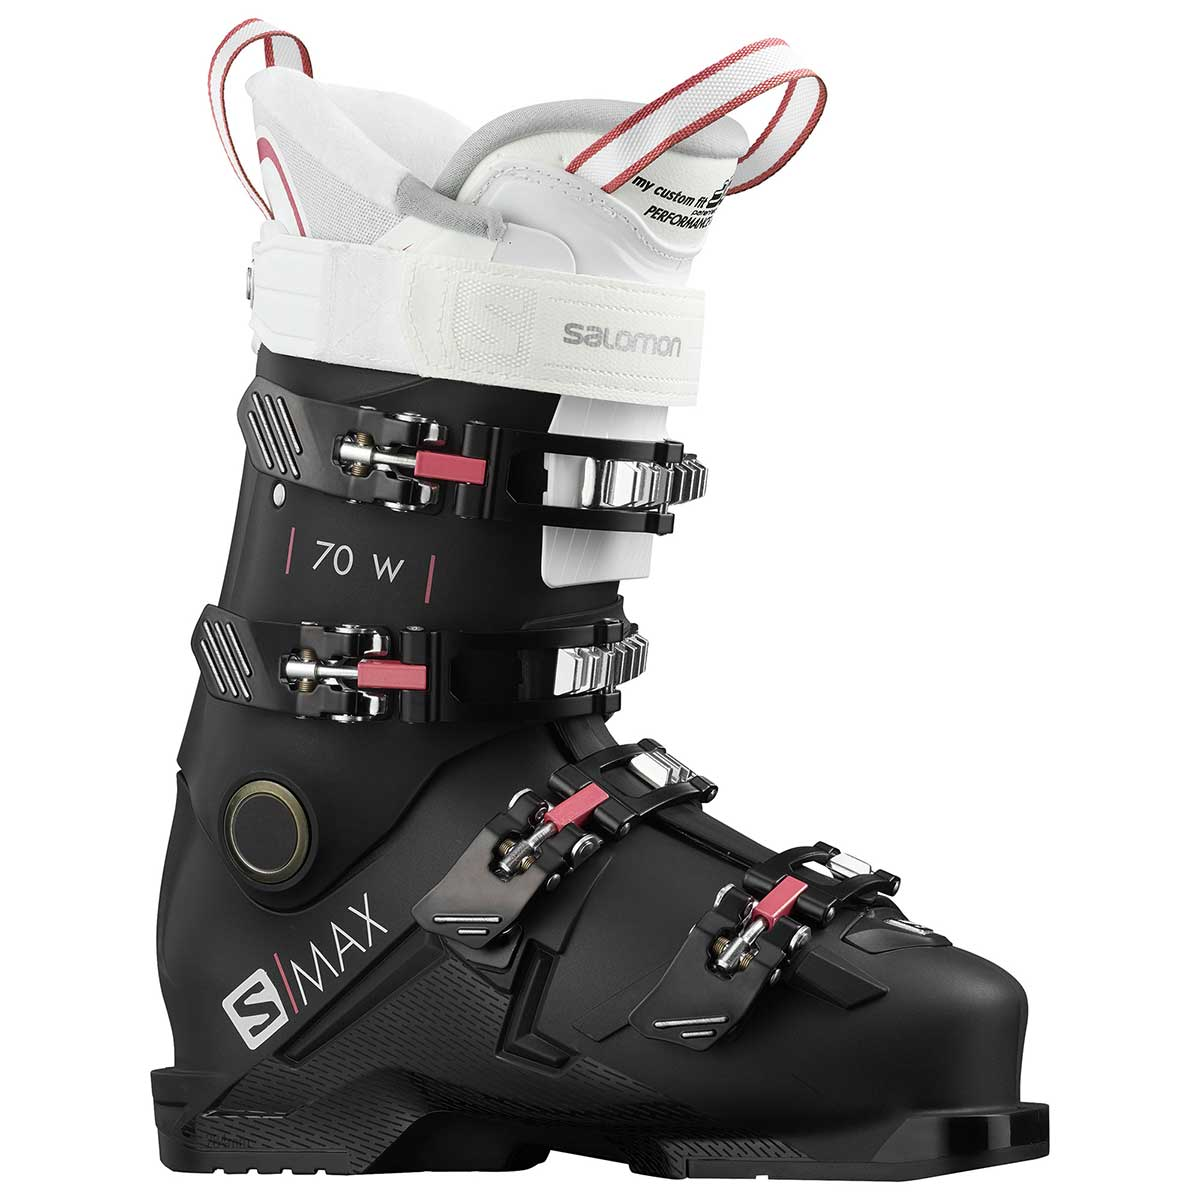 Salomon S/Max 70 ski boot in black and white